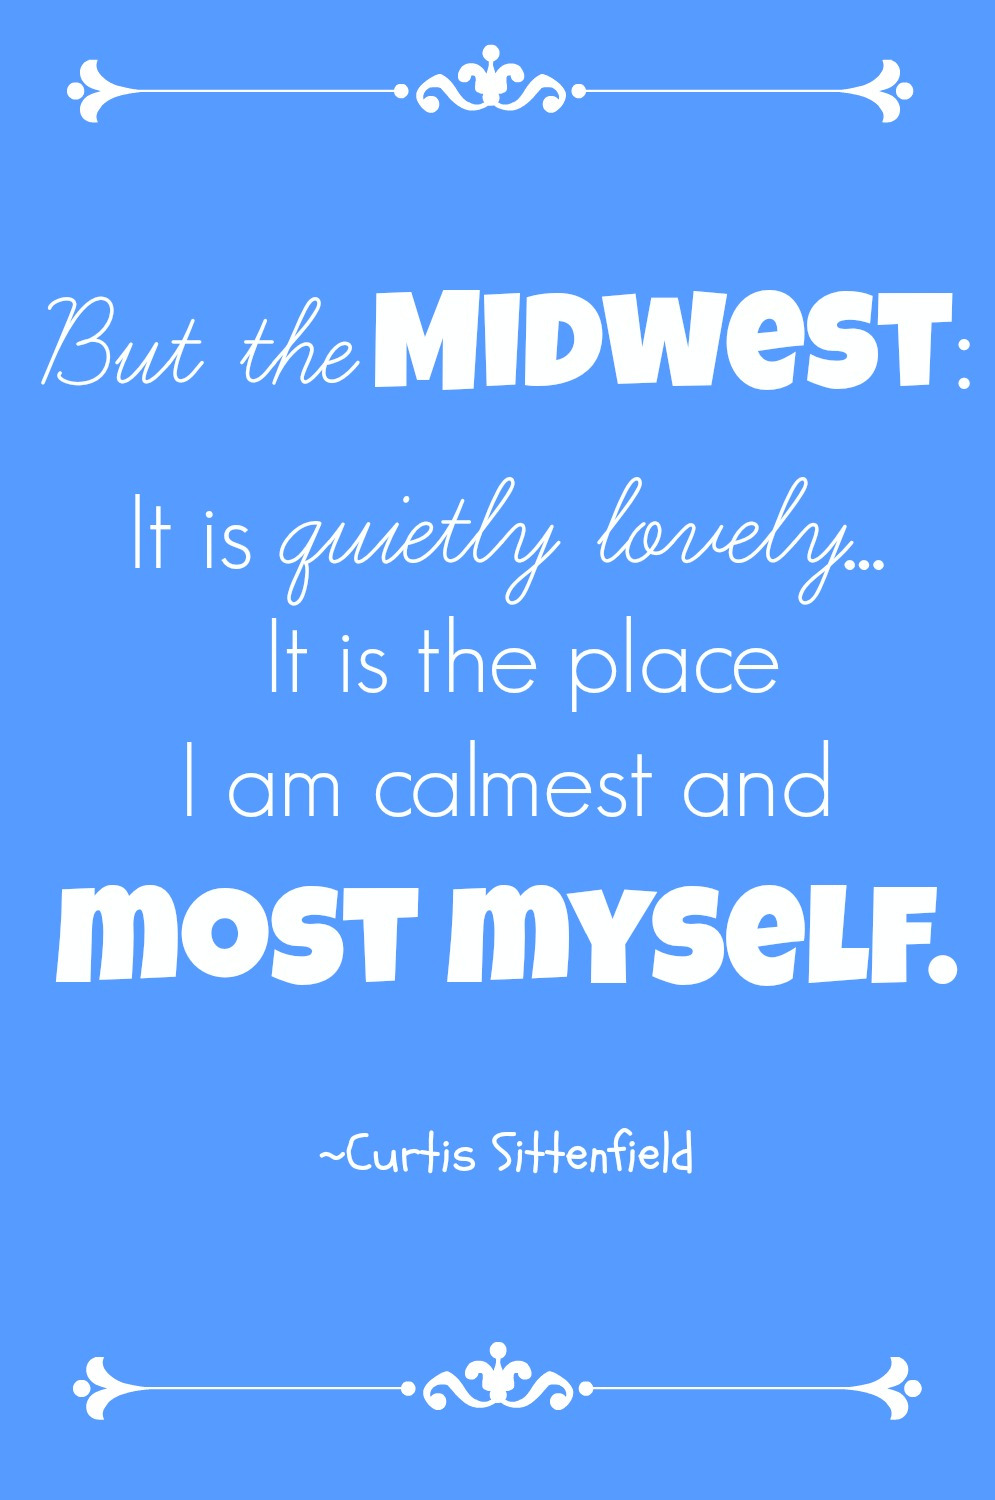 midwest quote